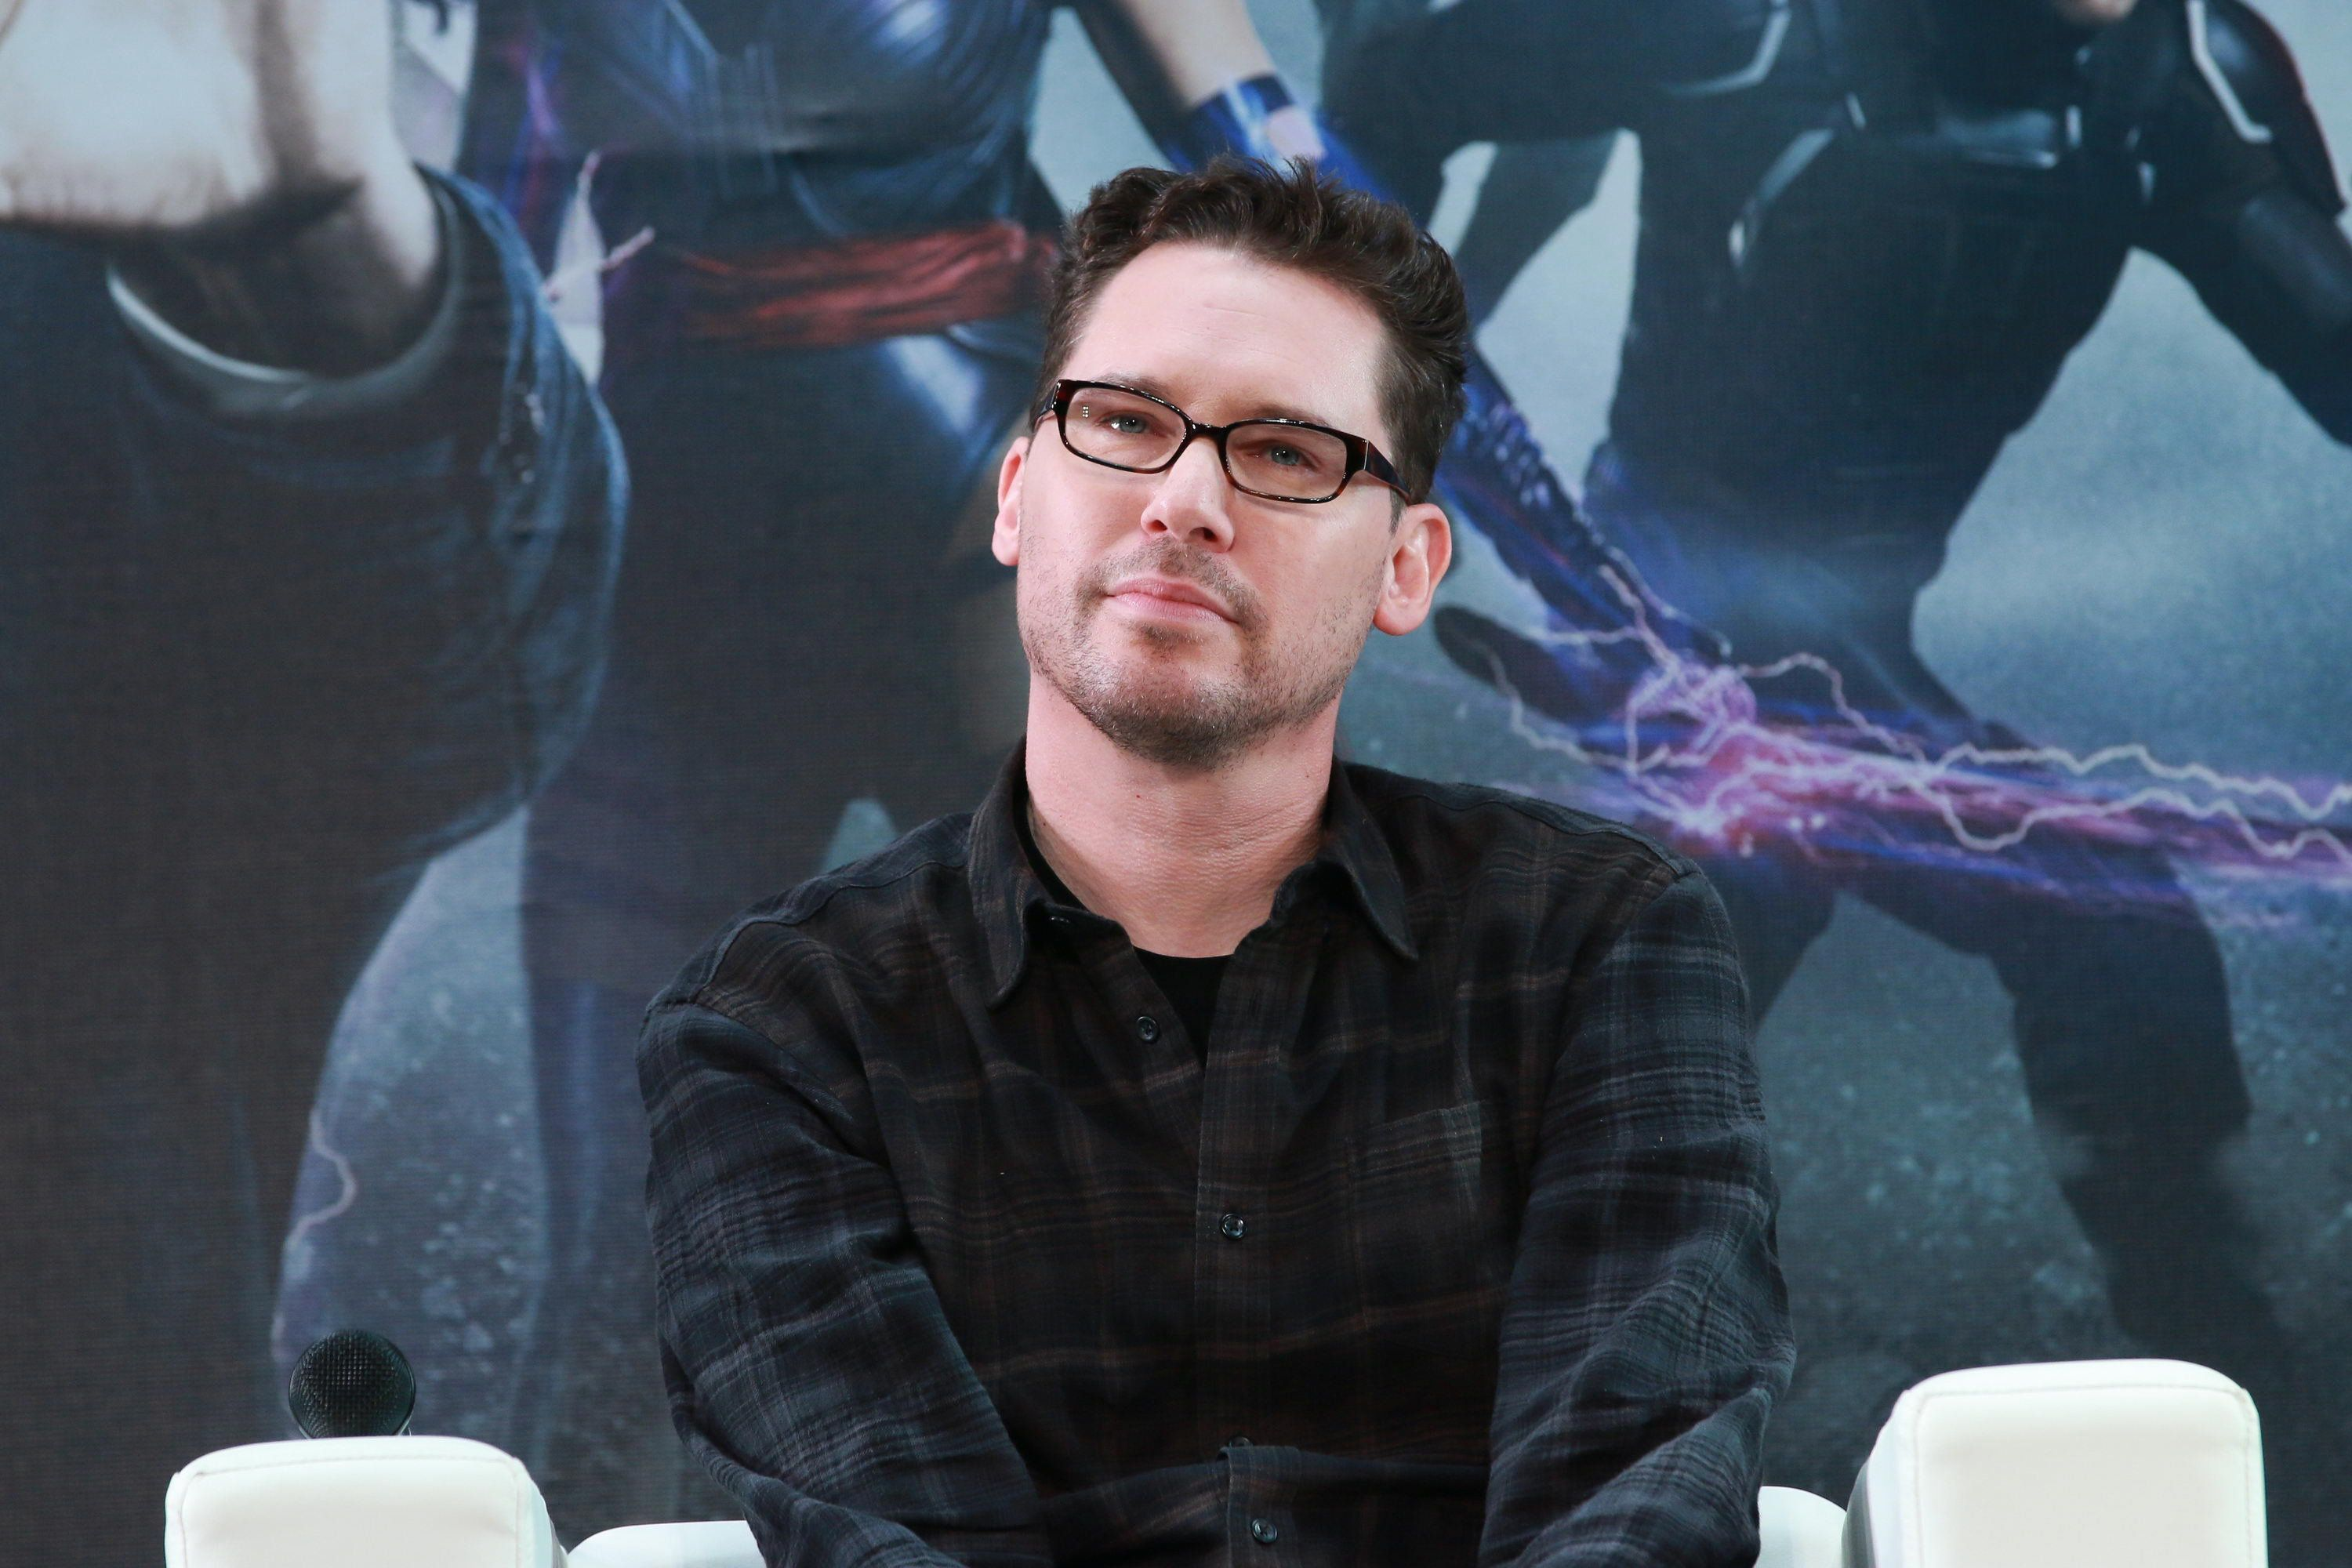 'X-Men' Director Bryan Singer Accused Of Raping 17-Year-Old